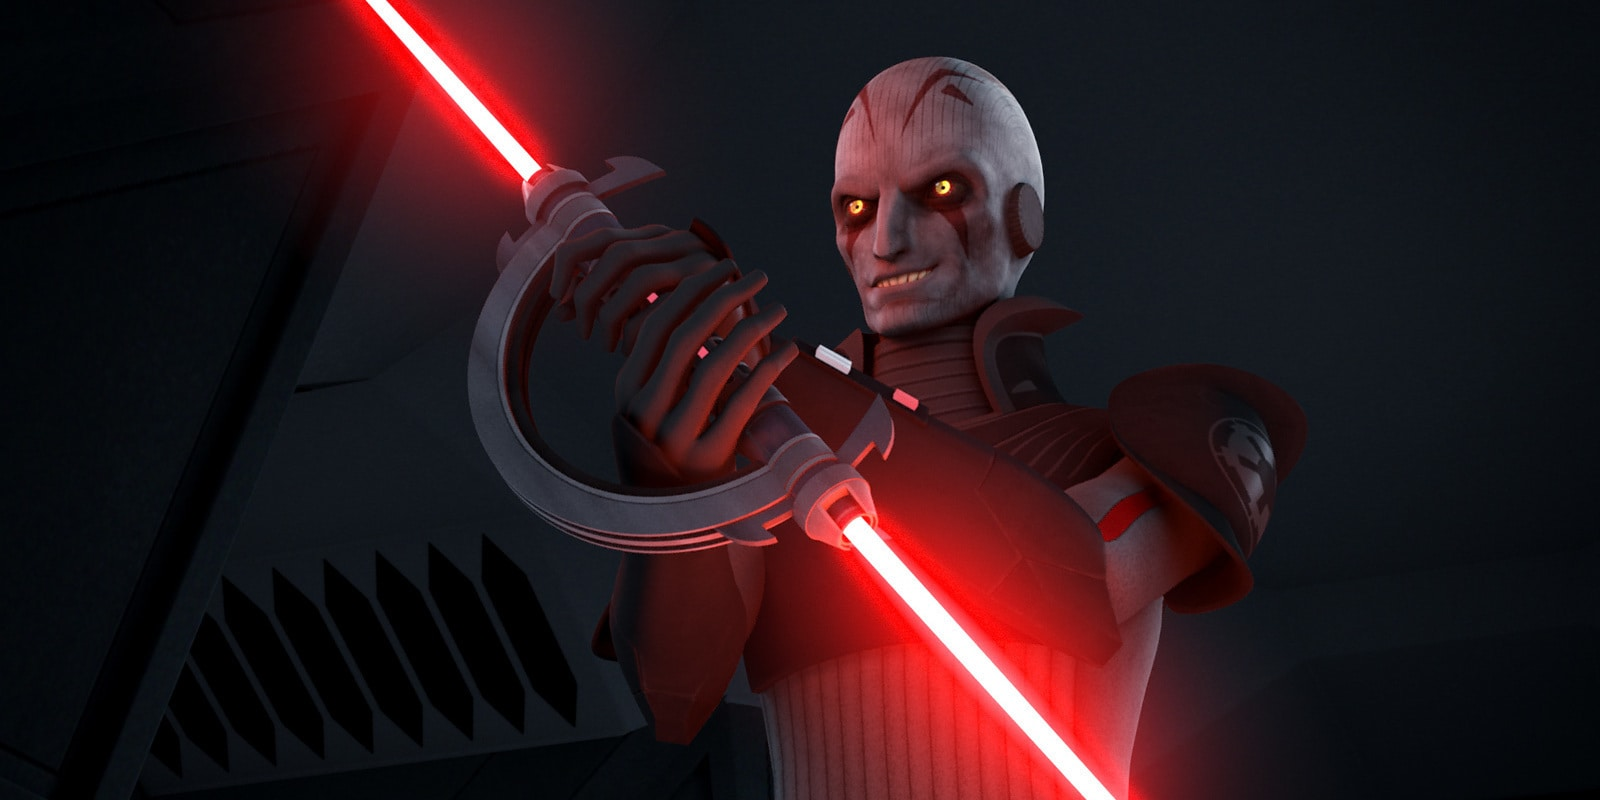 The Grand Inquisitor's Lightsaber | StarWars.com